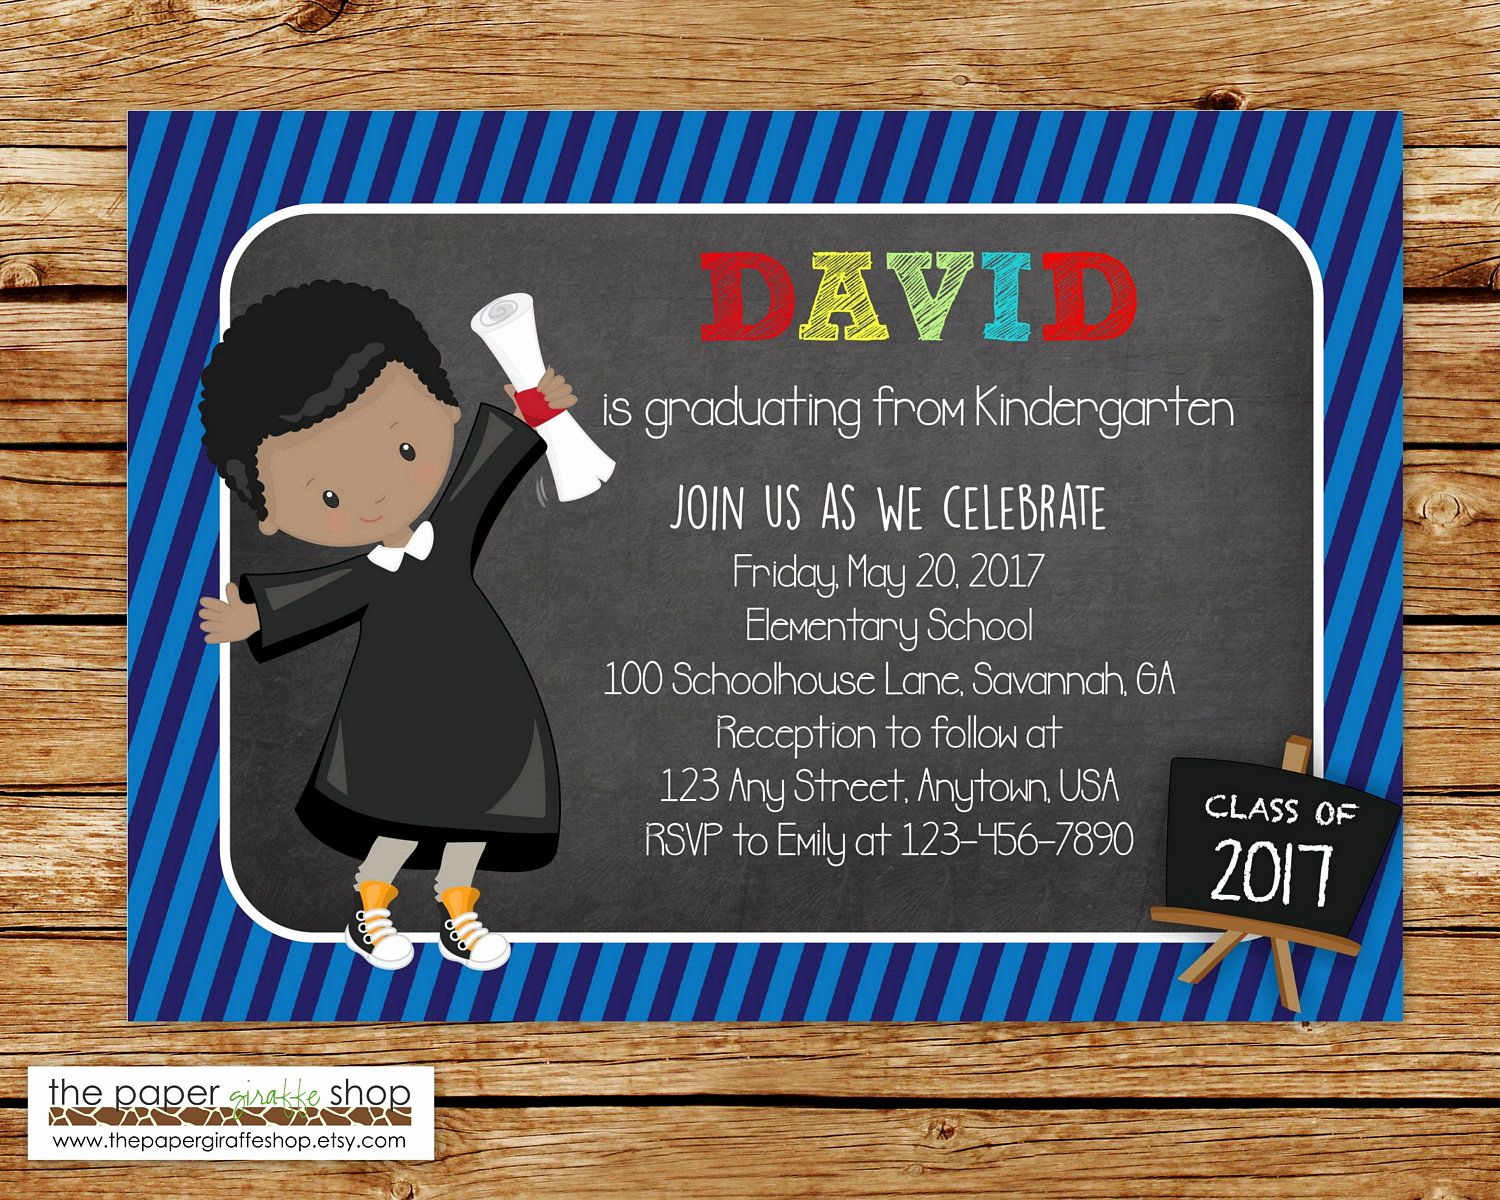 Kindergarten Graduation Invitation Ideas Luxury Kindergarten Graduation Invitation